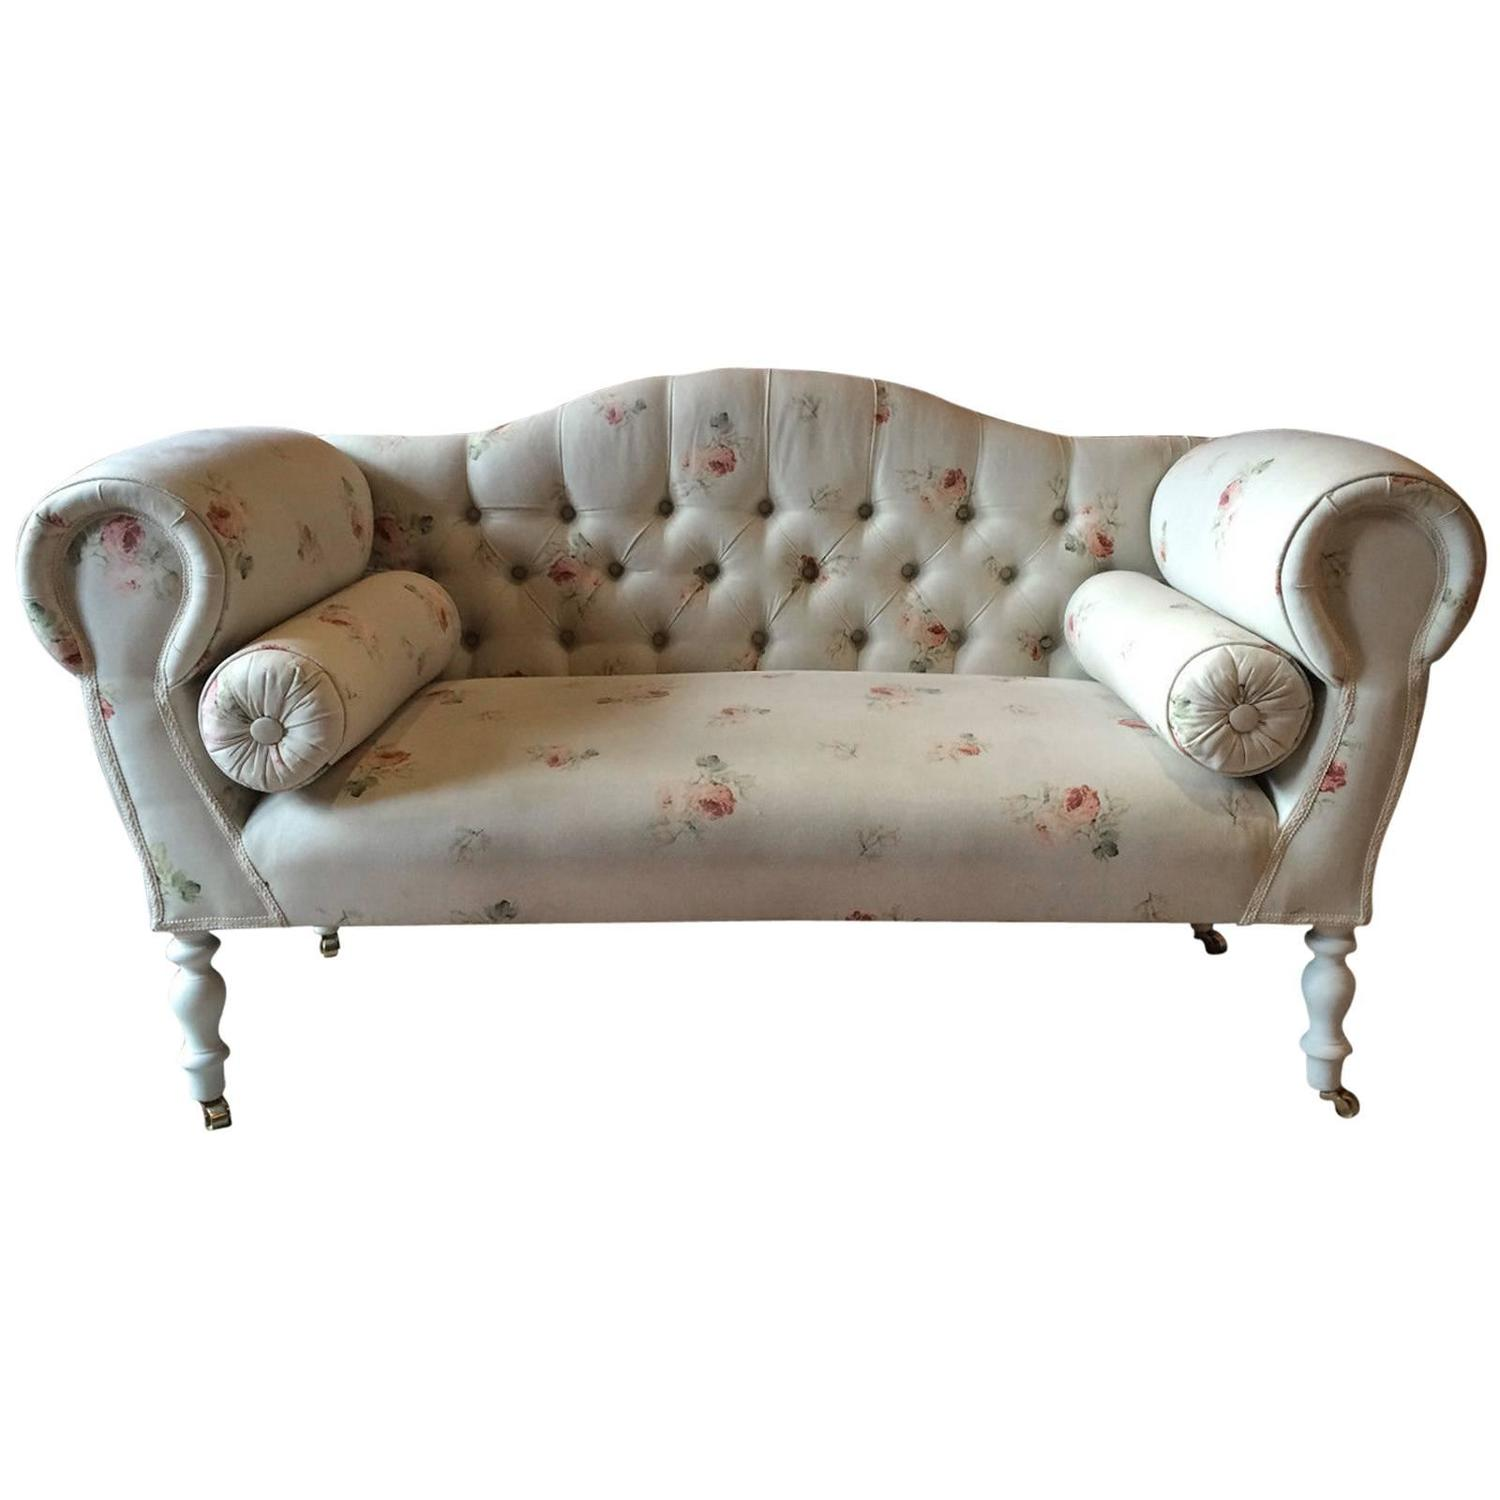 Attirant Stunning Laura Ashley Sofa Shabby Chic Button Back Settee Antique Style  Two Seat At 1stdibs